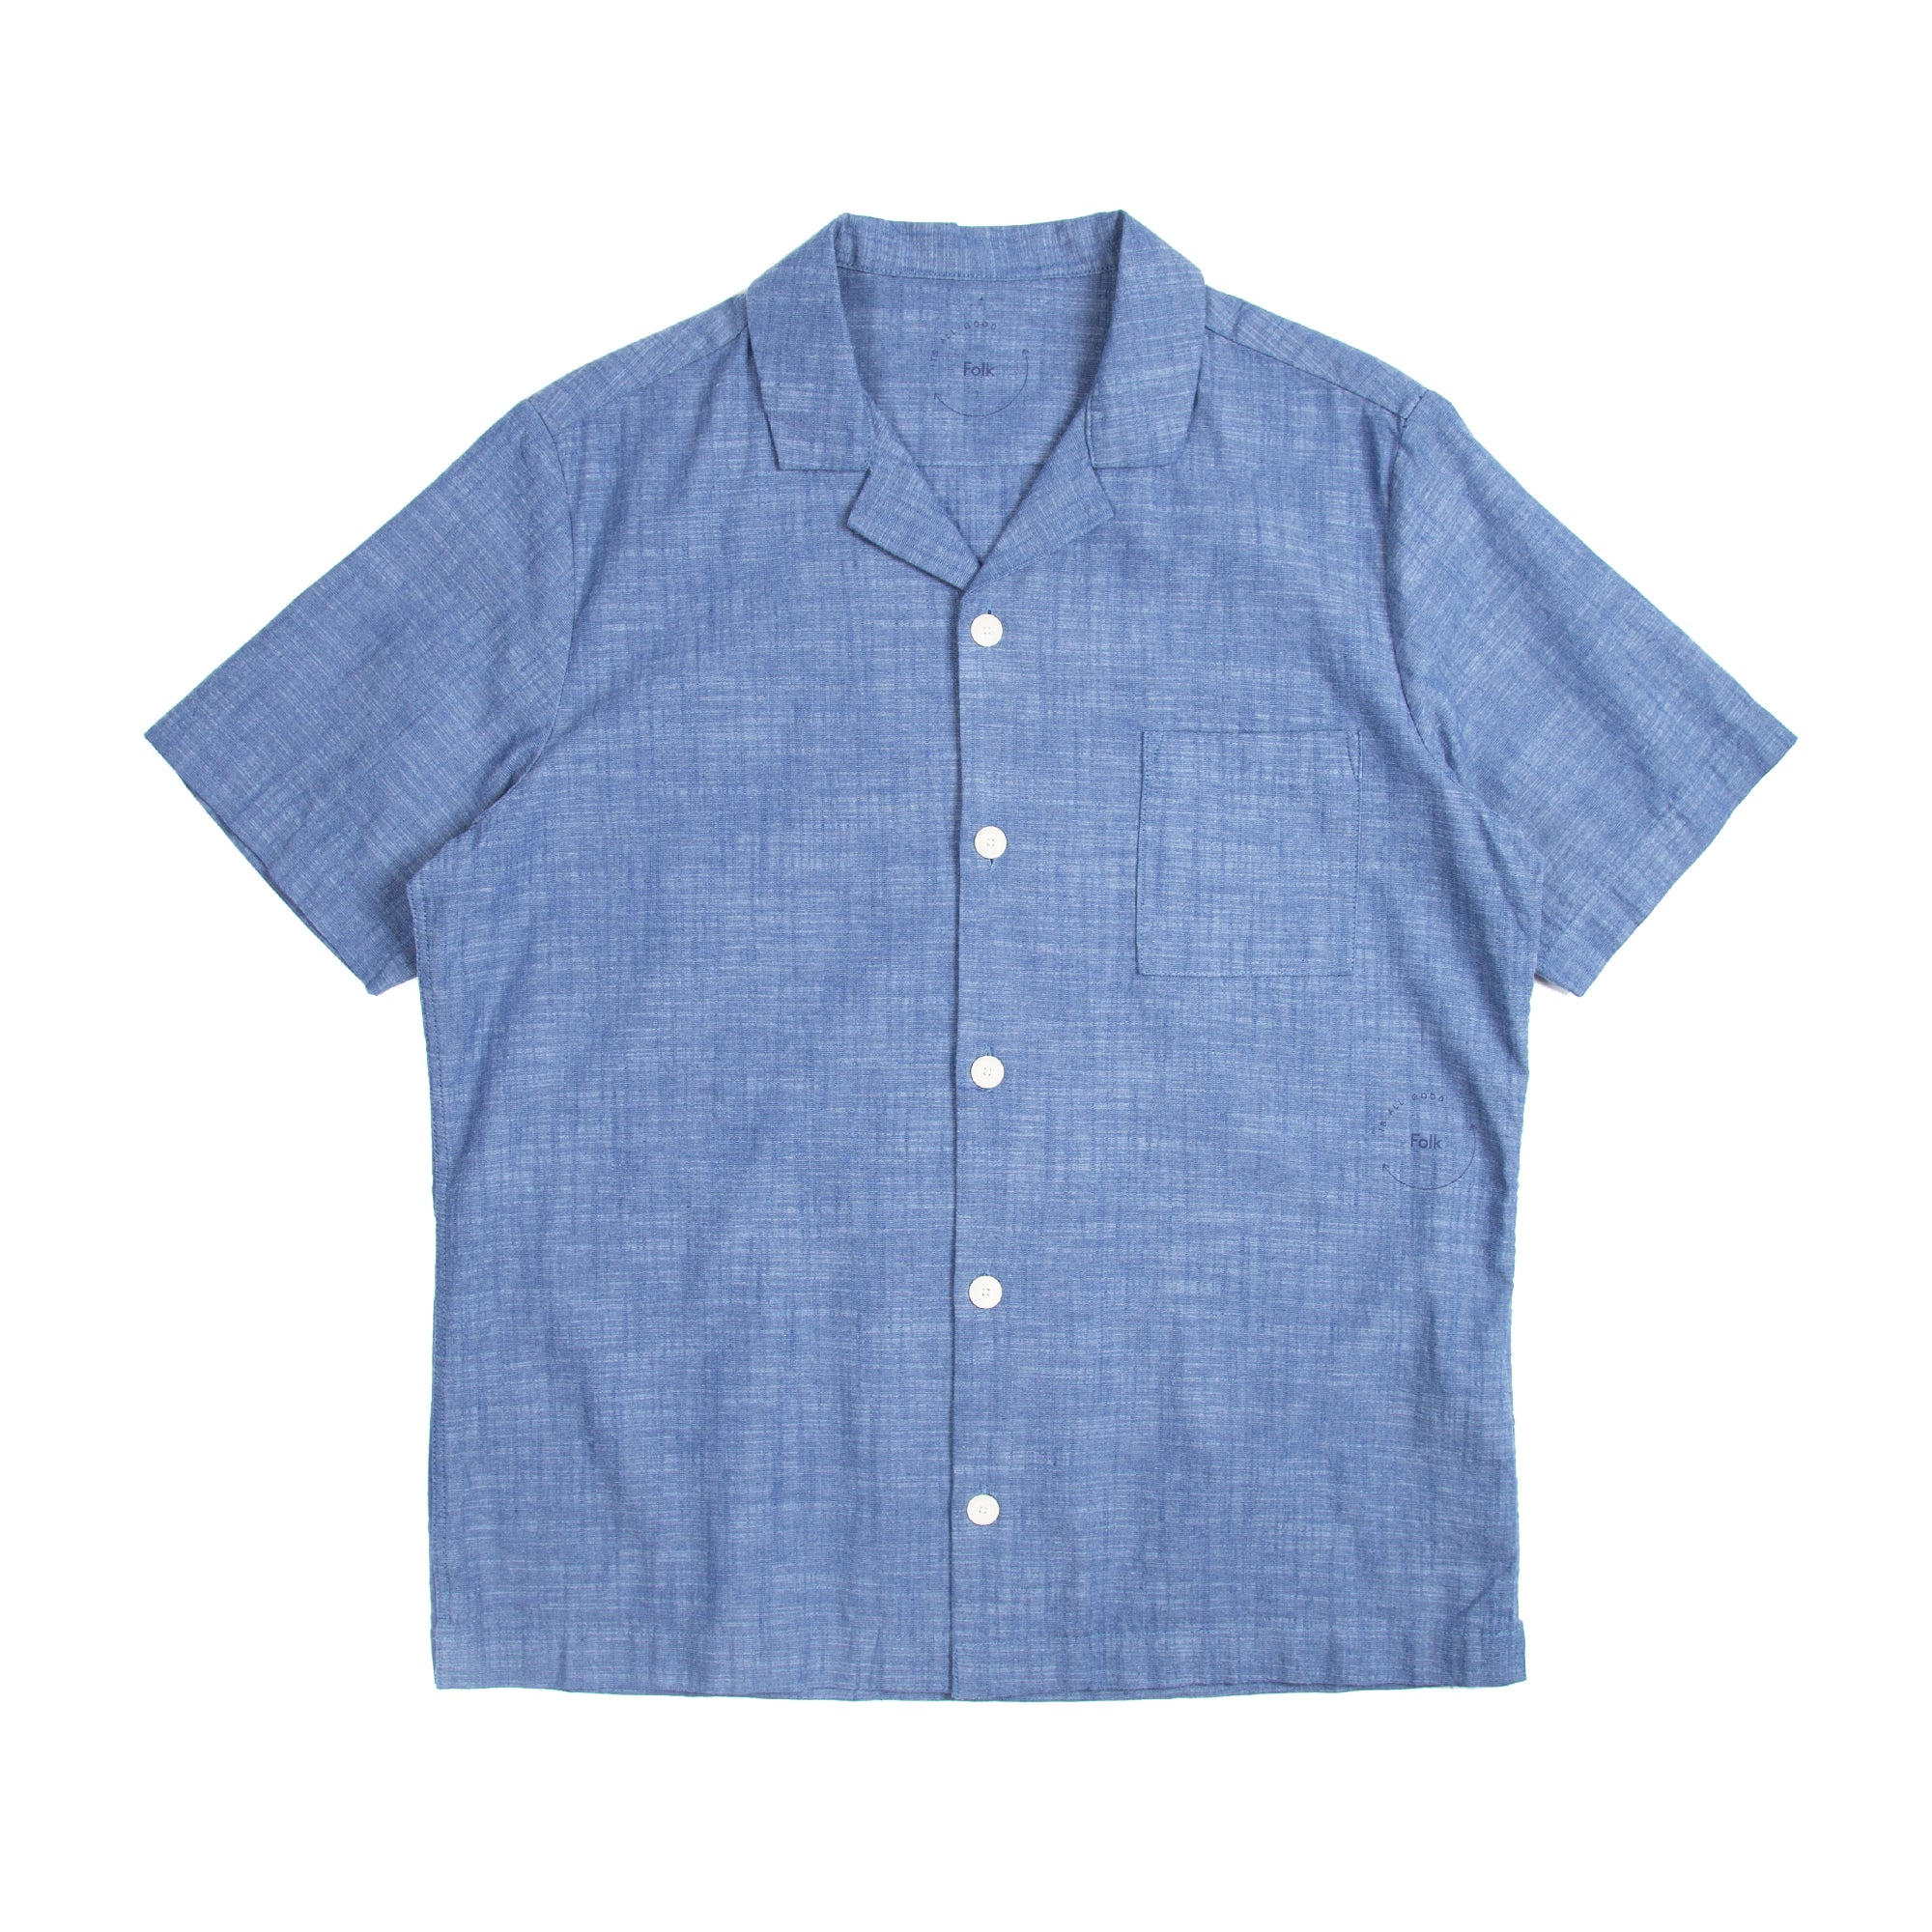 Holiday Shirt - Chambray